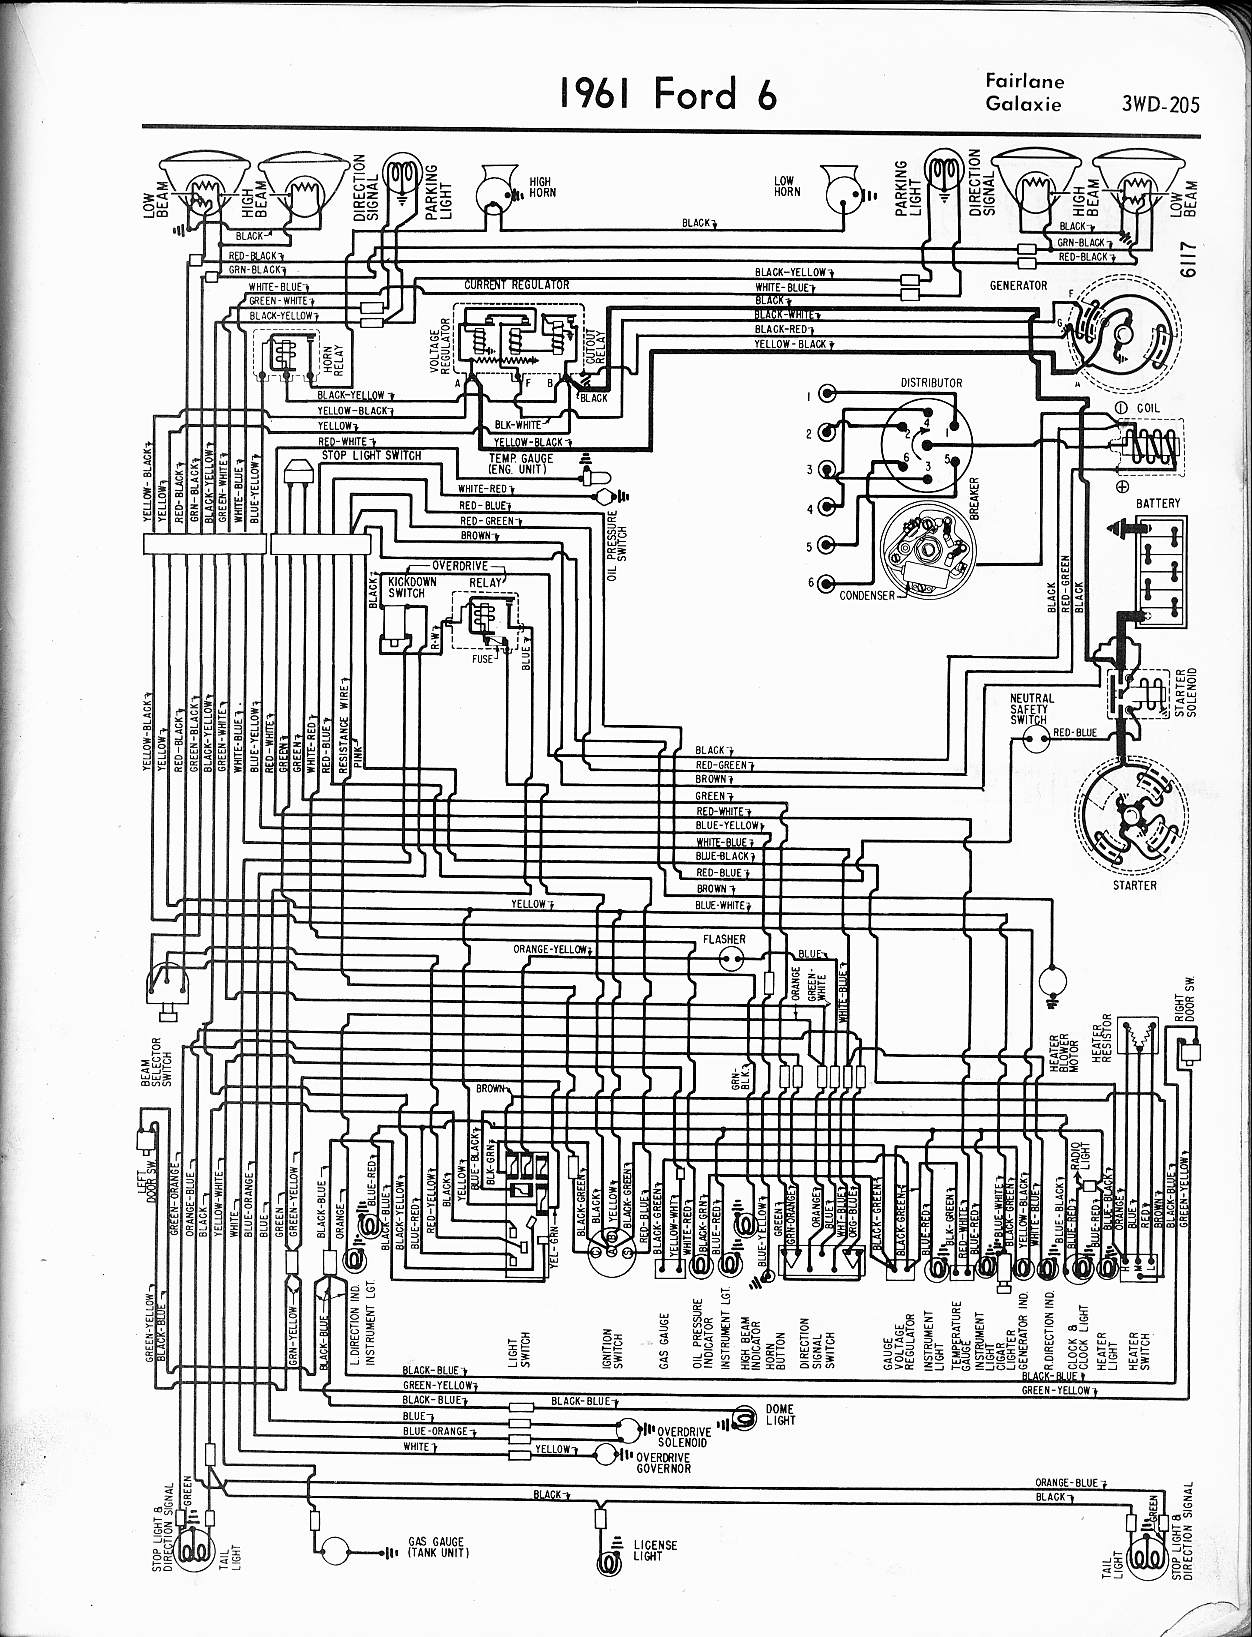 57 65 ford wiring diagrams rh oldcarmanualproject com 1974 Ford Pinto Wiring-Diagram 1969 Ford Mustang Wiring Diagram